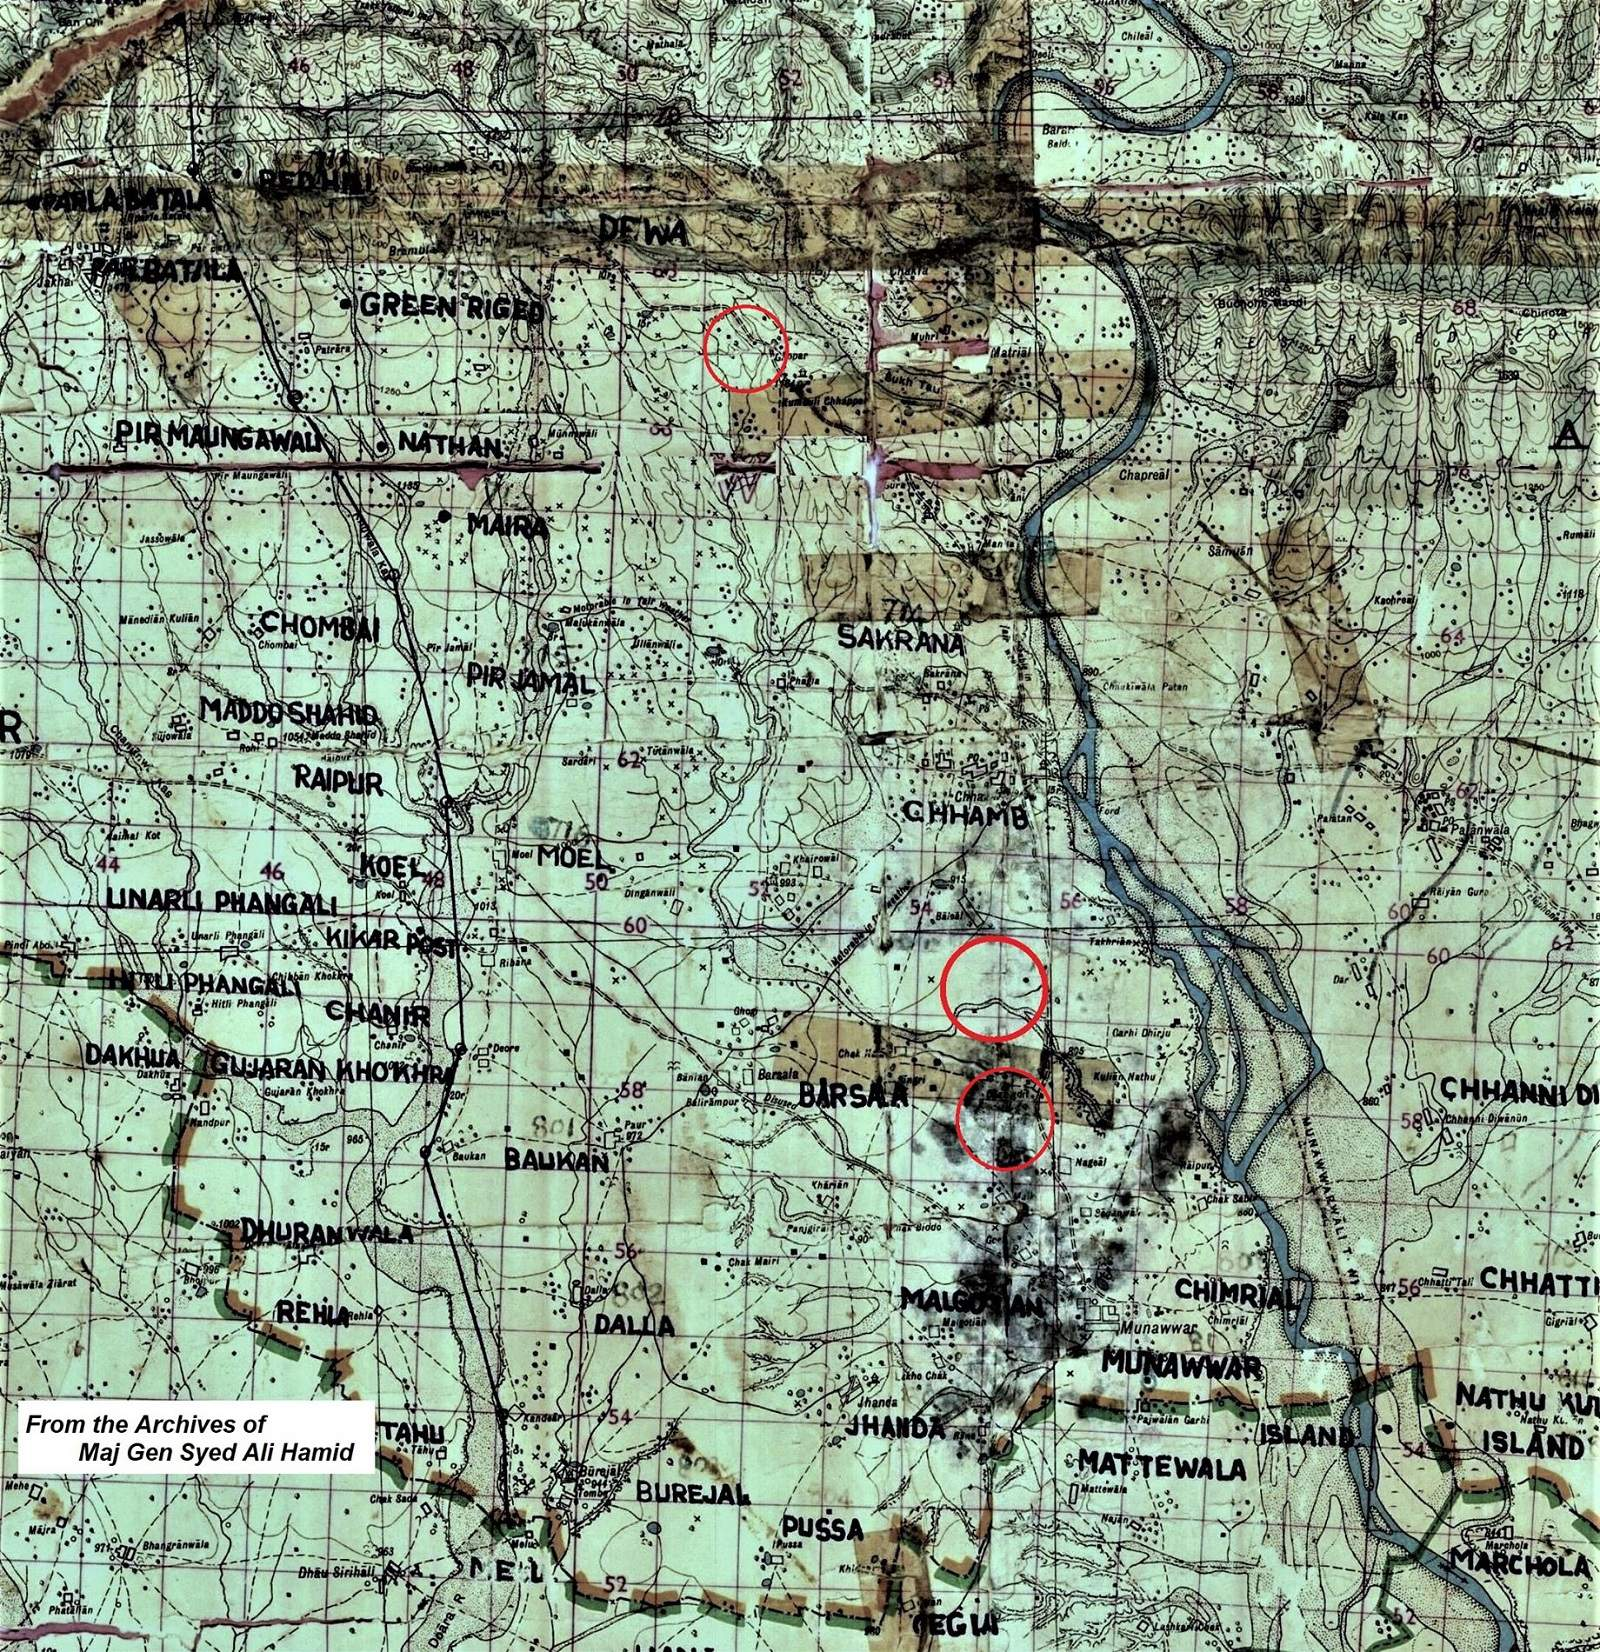 Indian Army Map from the collection of Maj Gen Syed Ali Hamid